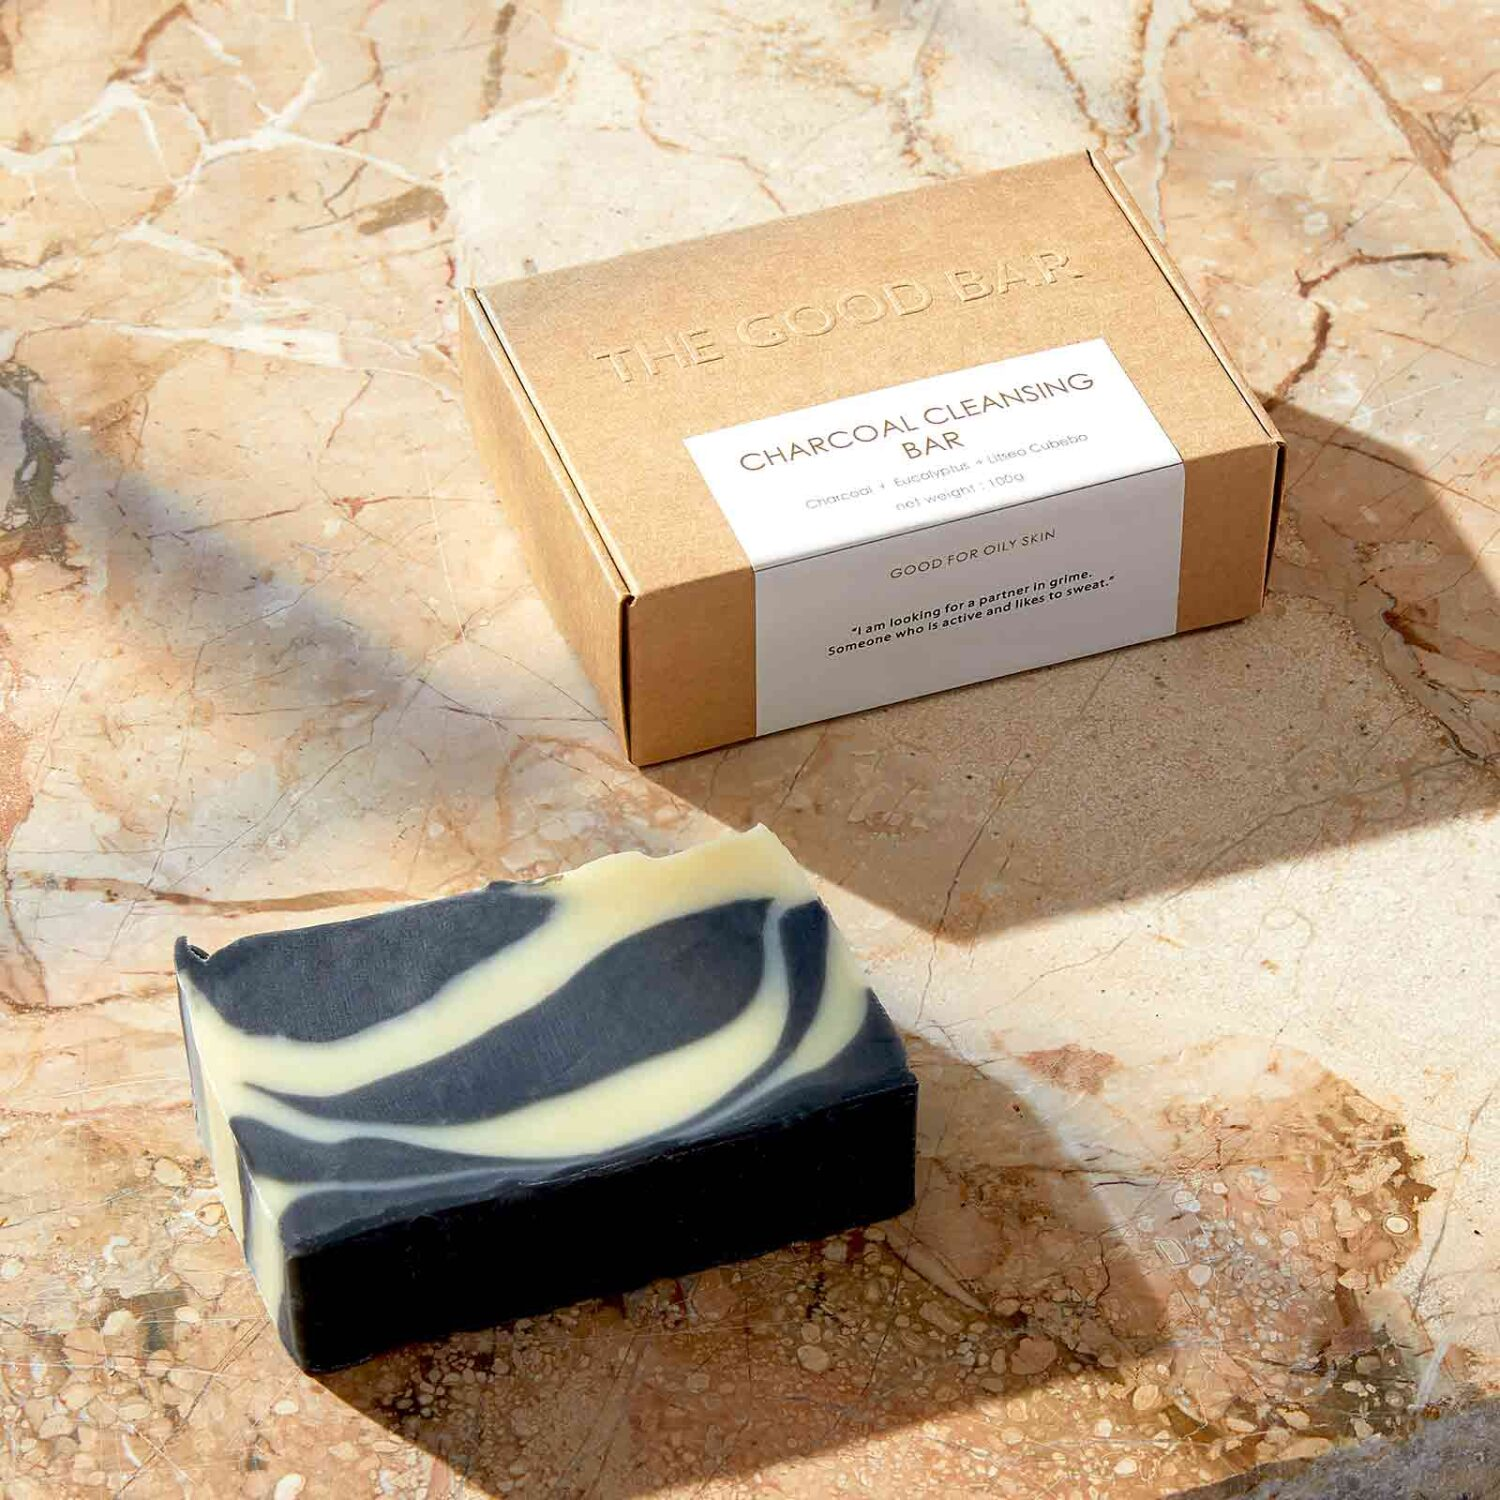 Charcoal Cleansing Bar by The Good Bar